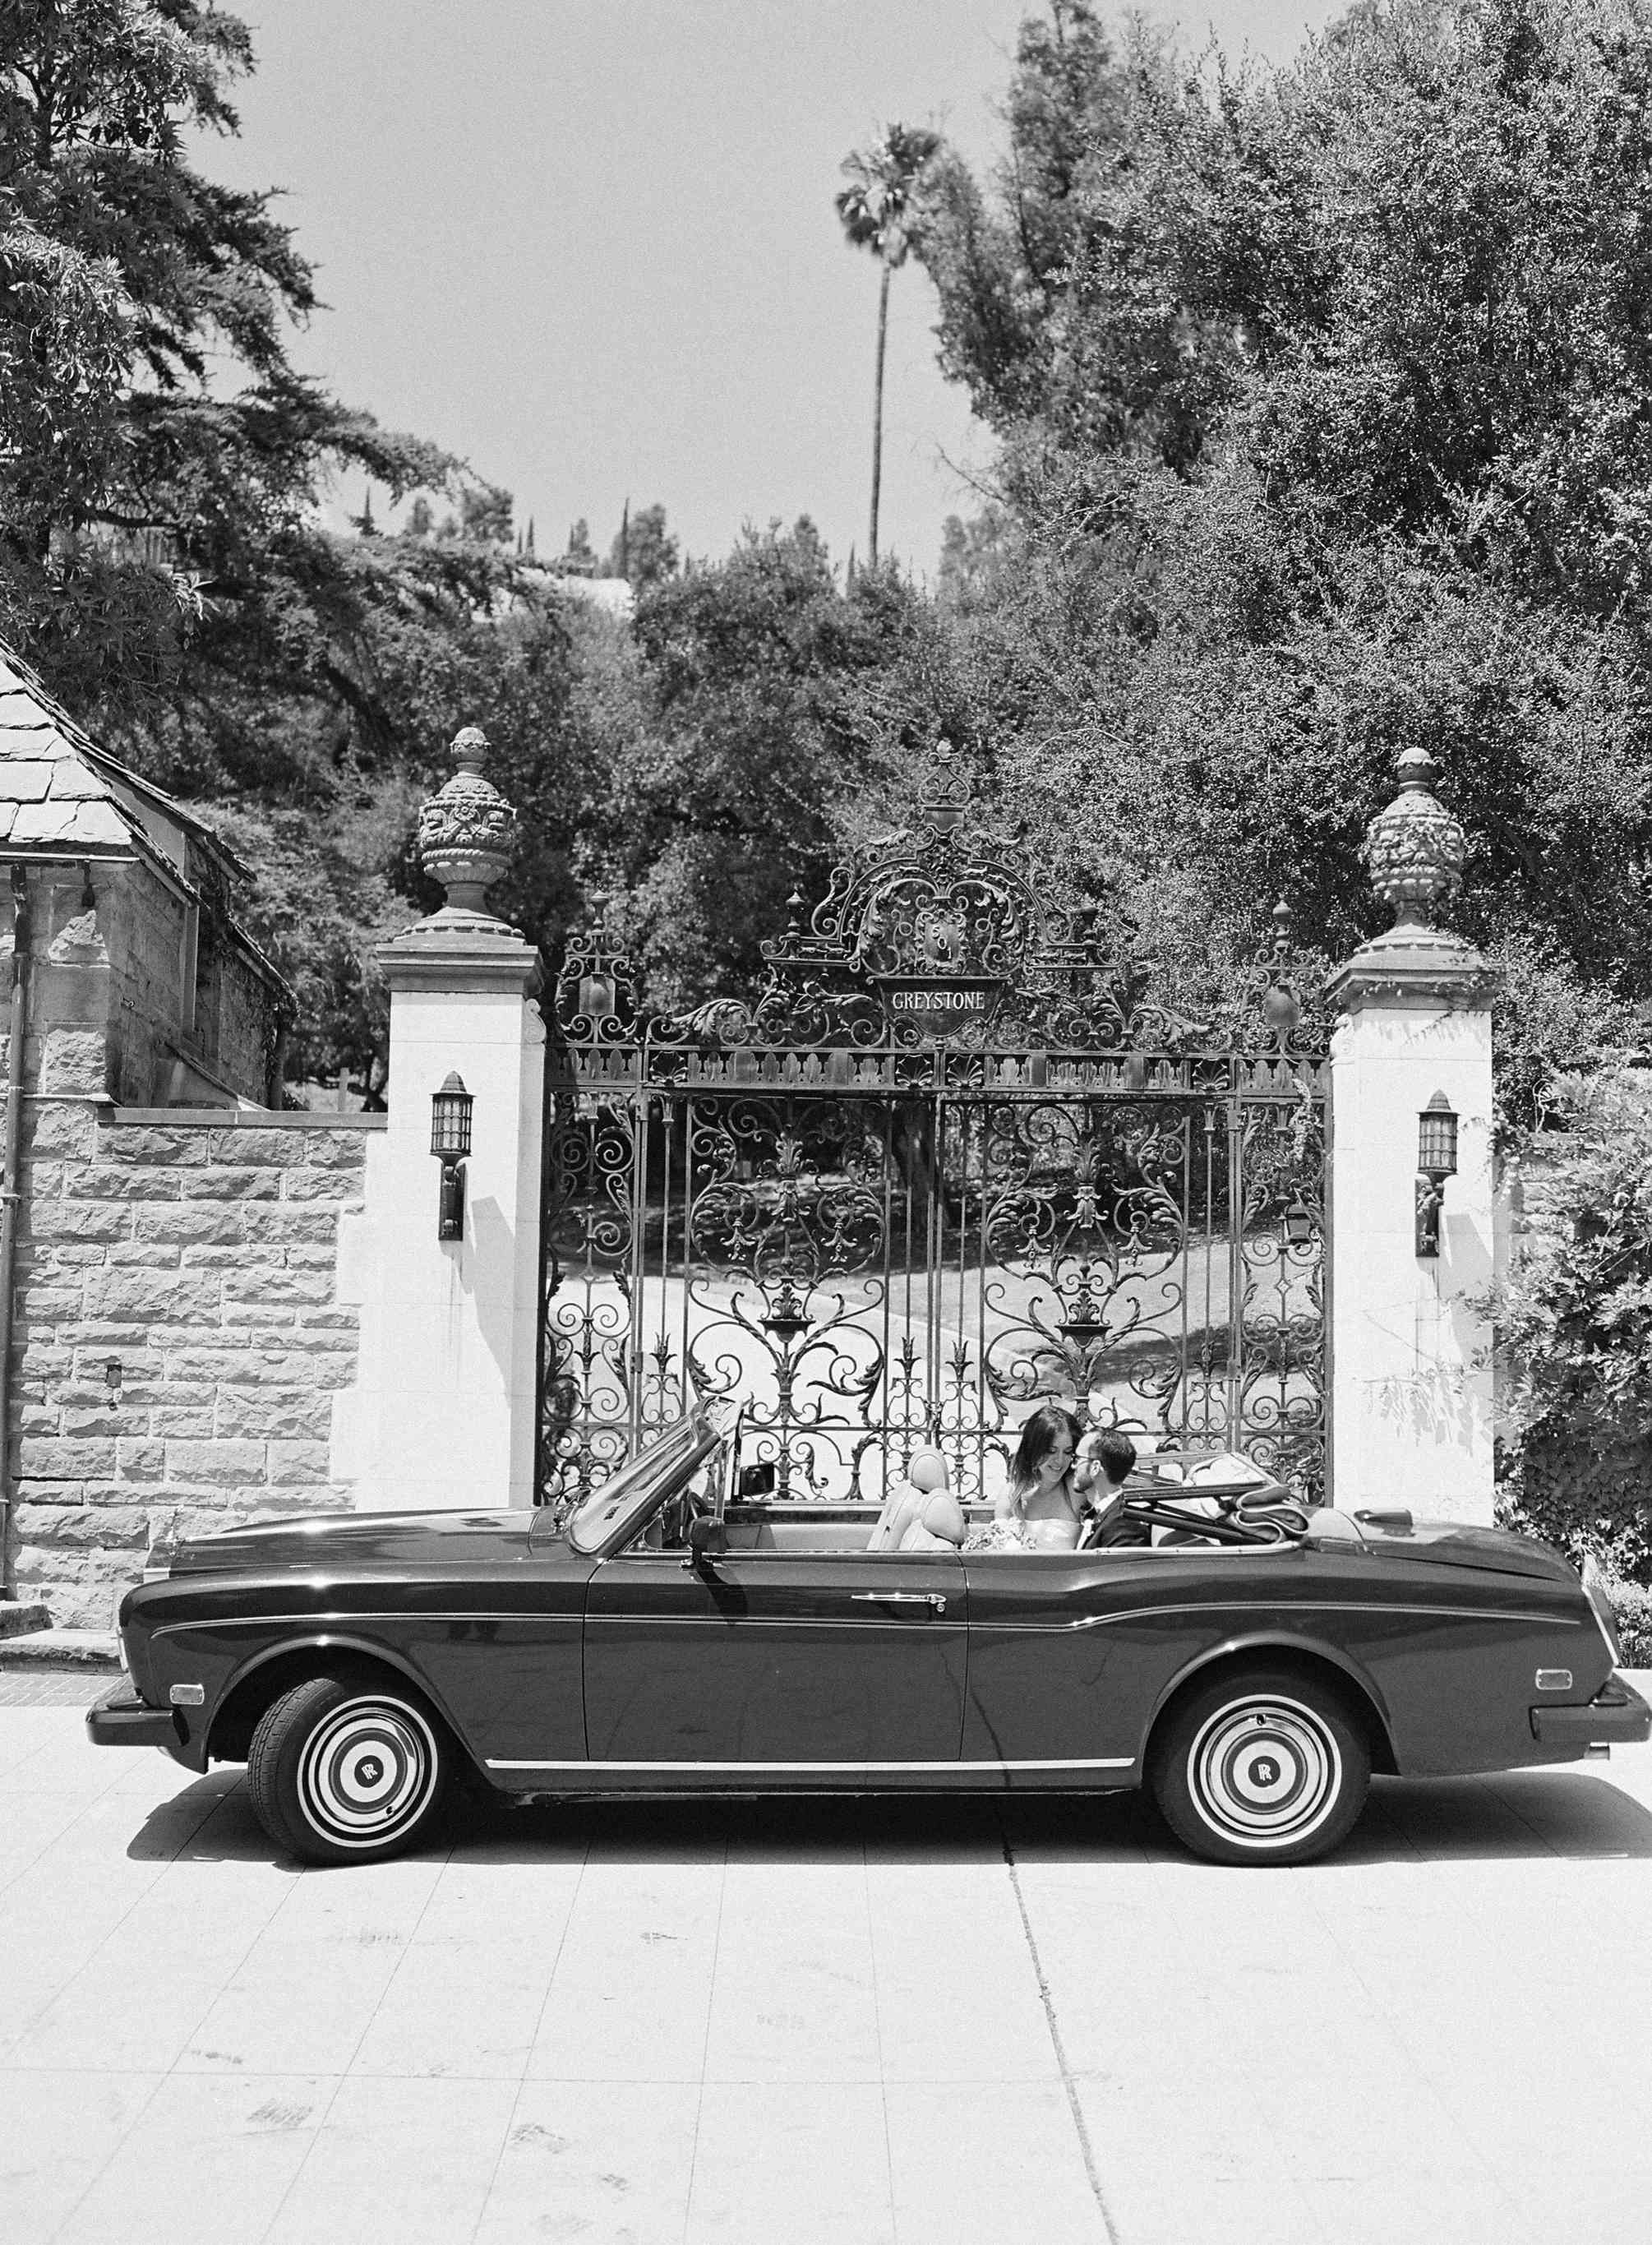 The couple poses in a vintage Rolls Royce